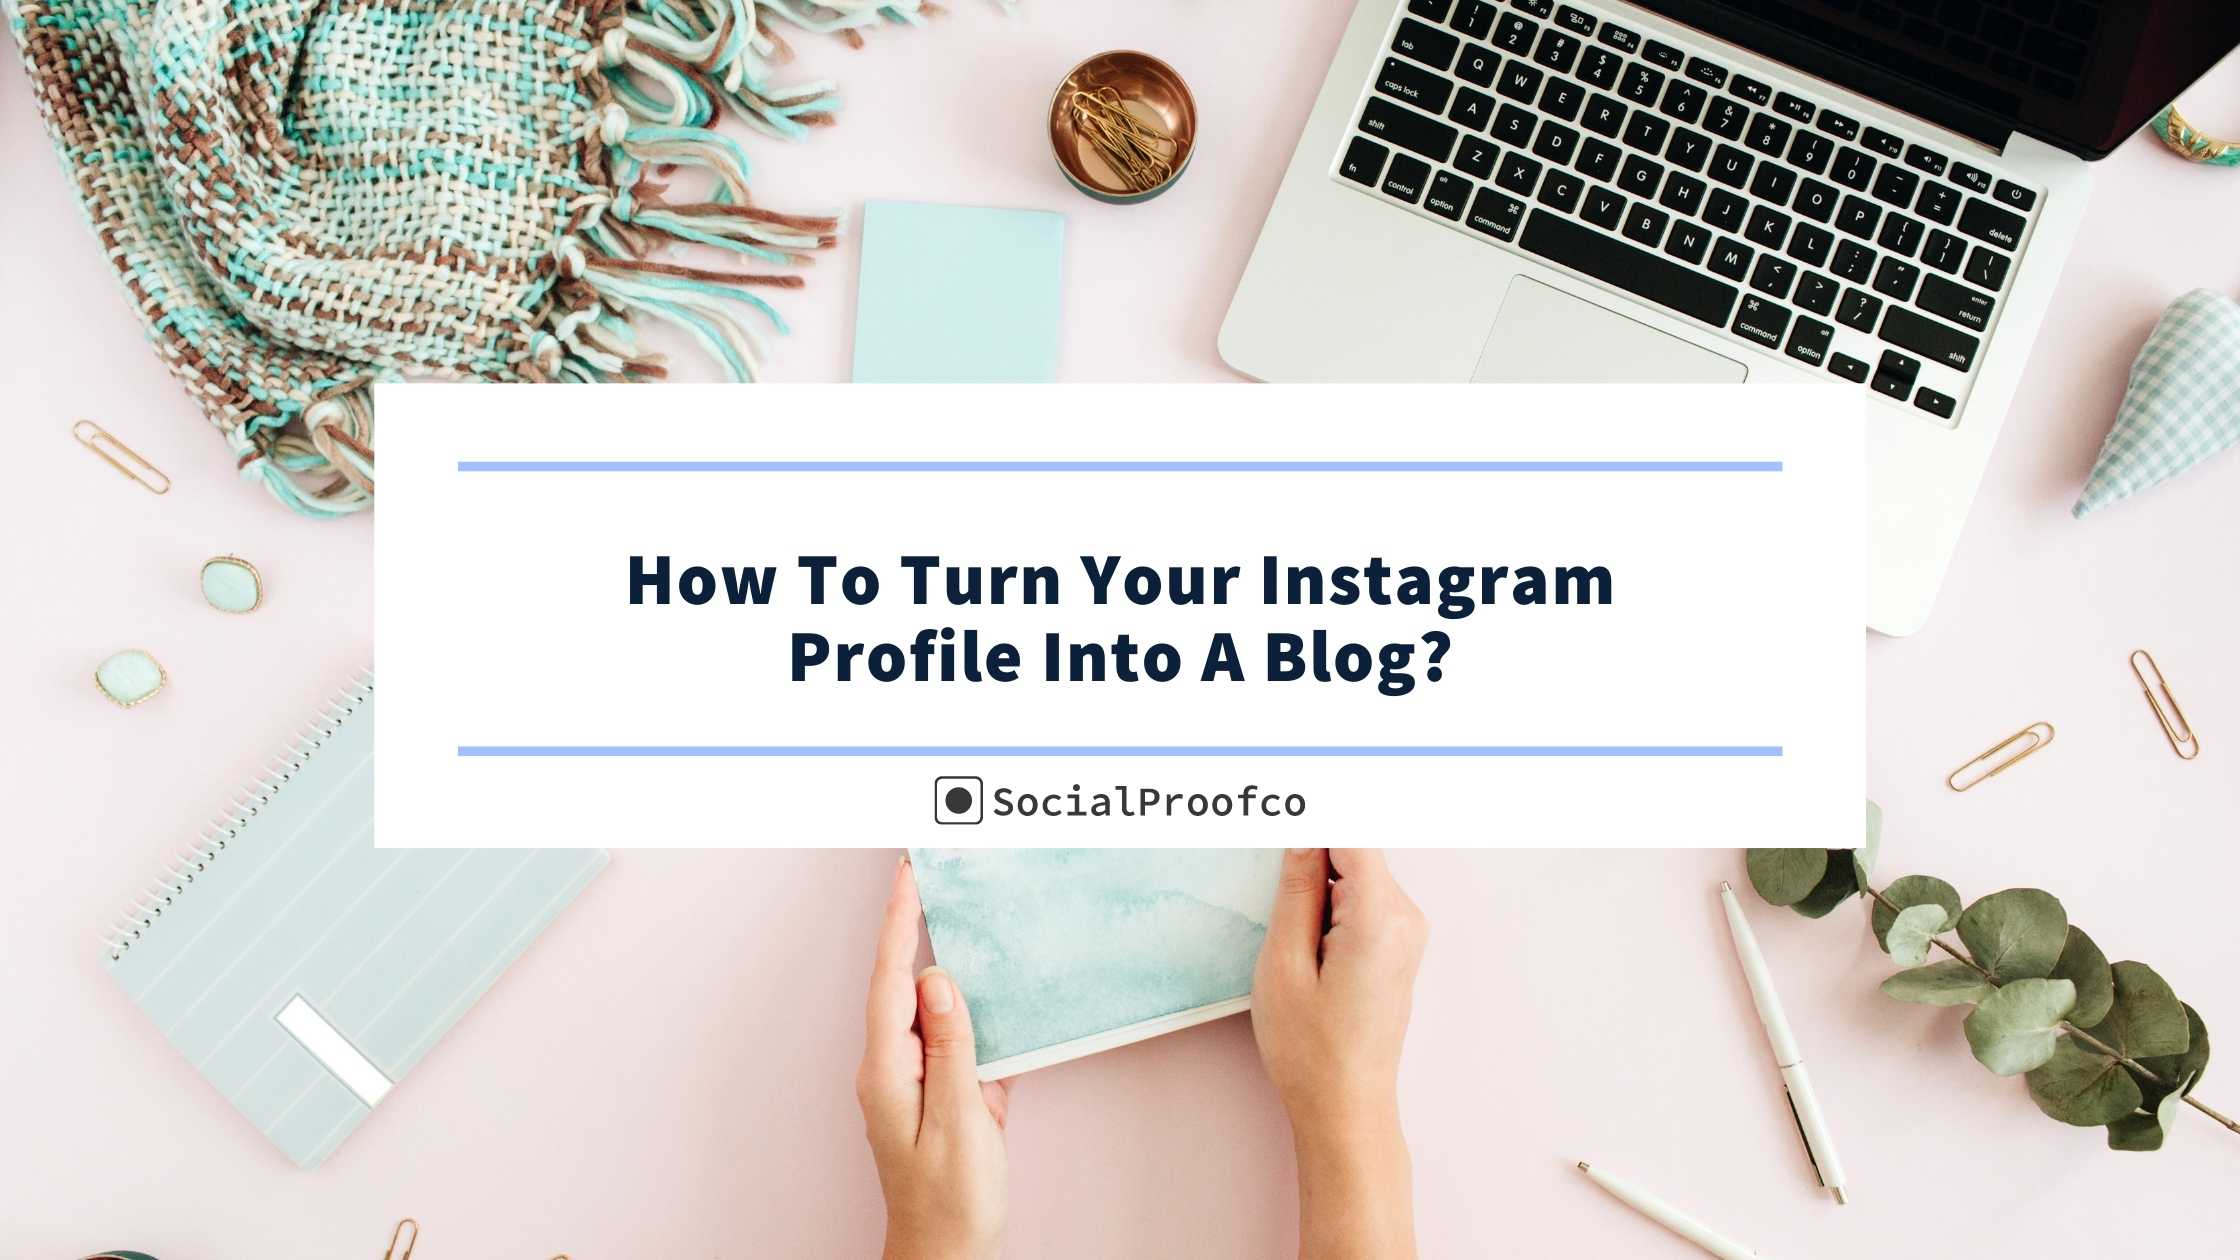 Turn Your Instagram Profile Into A Blog